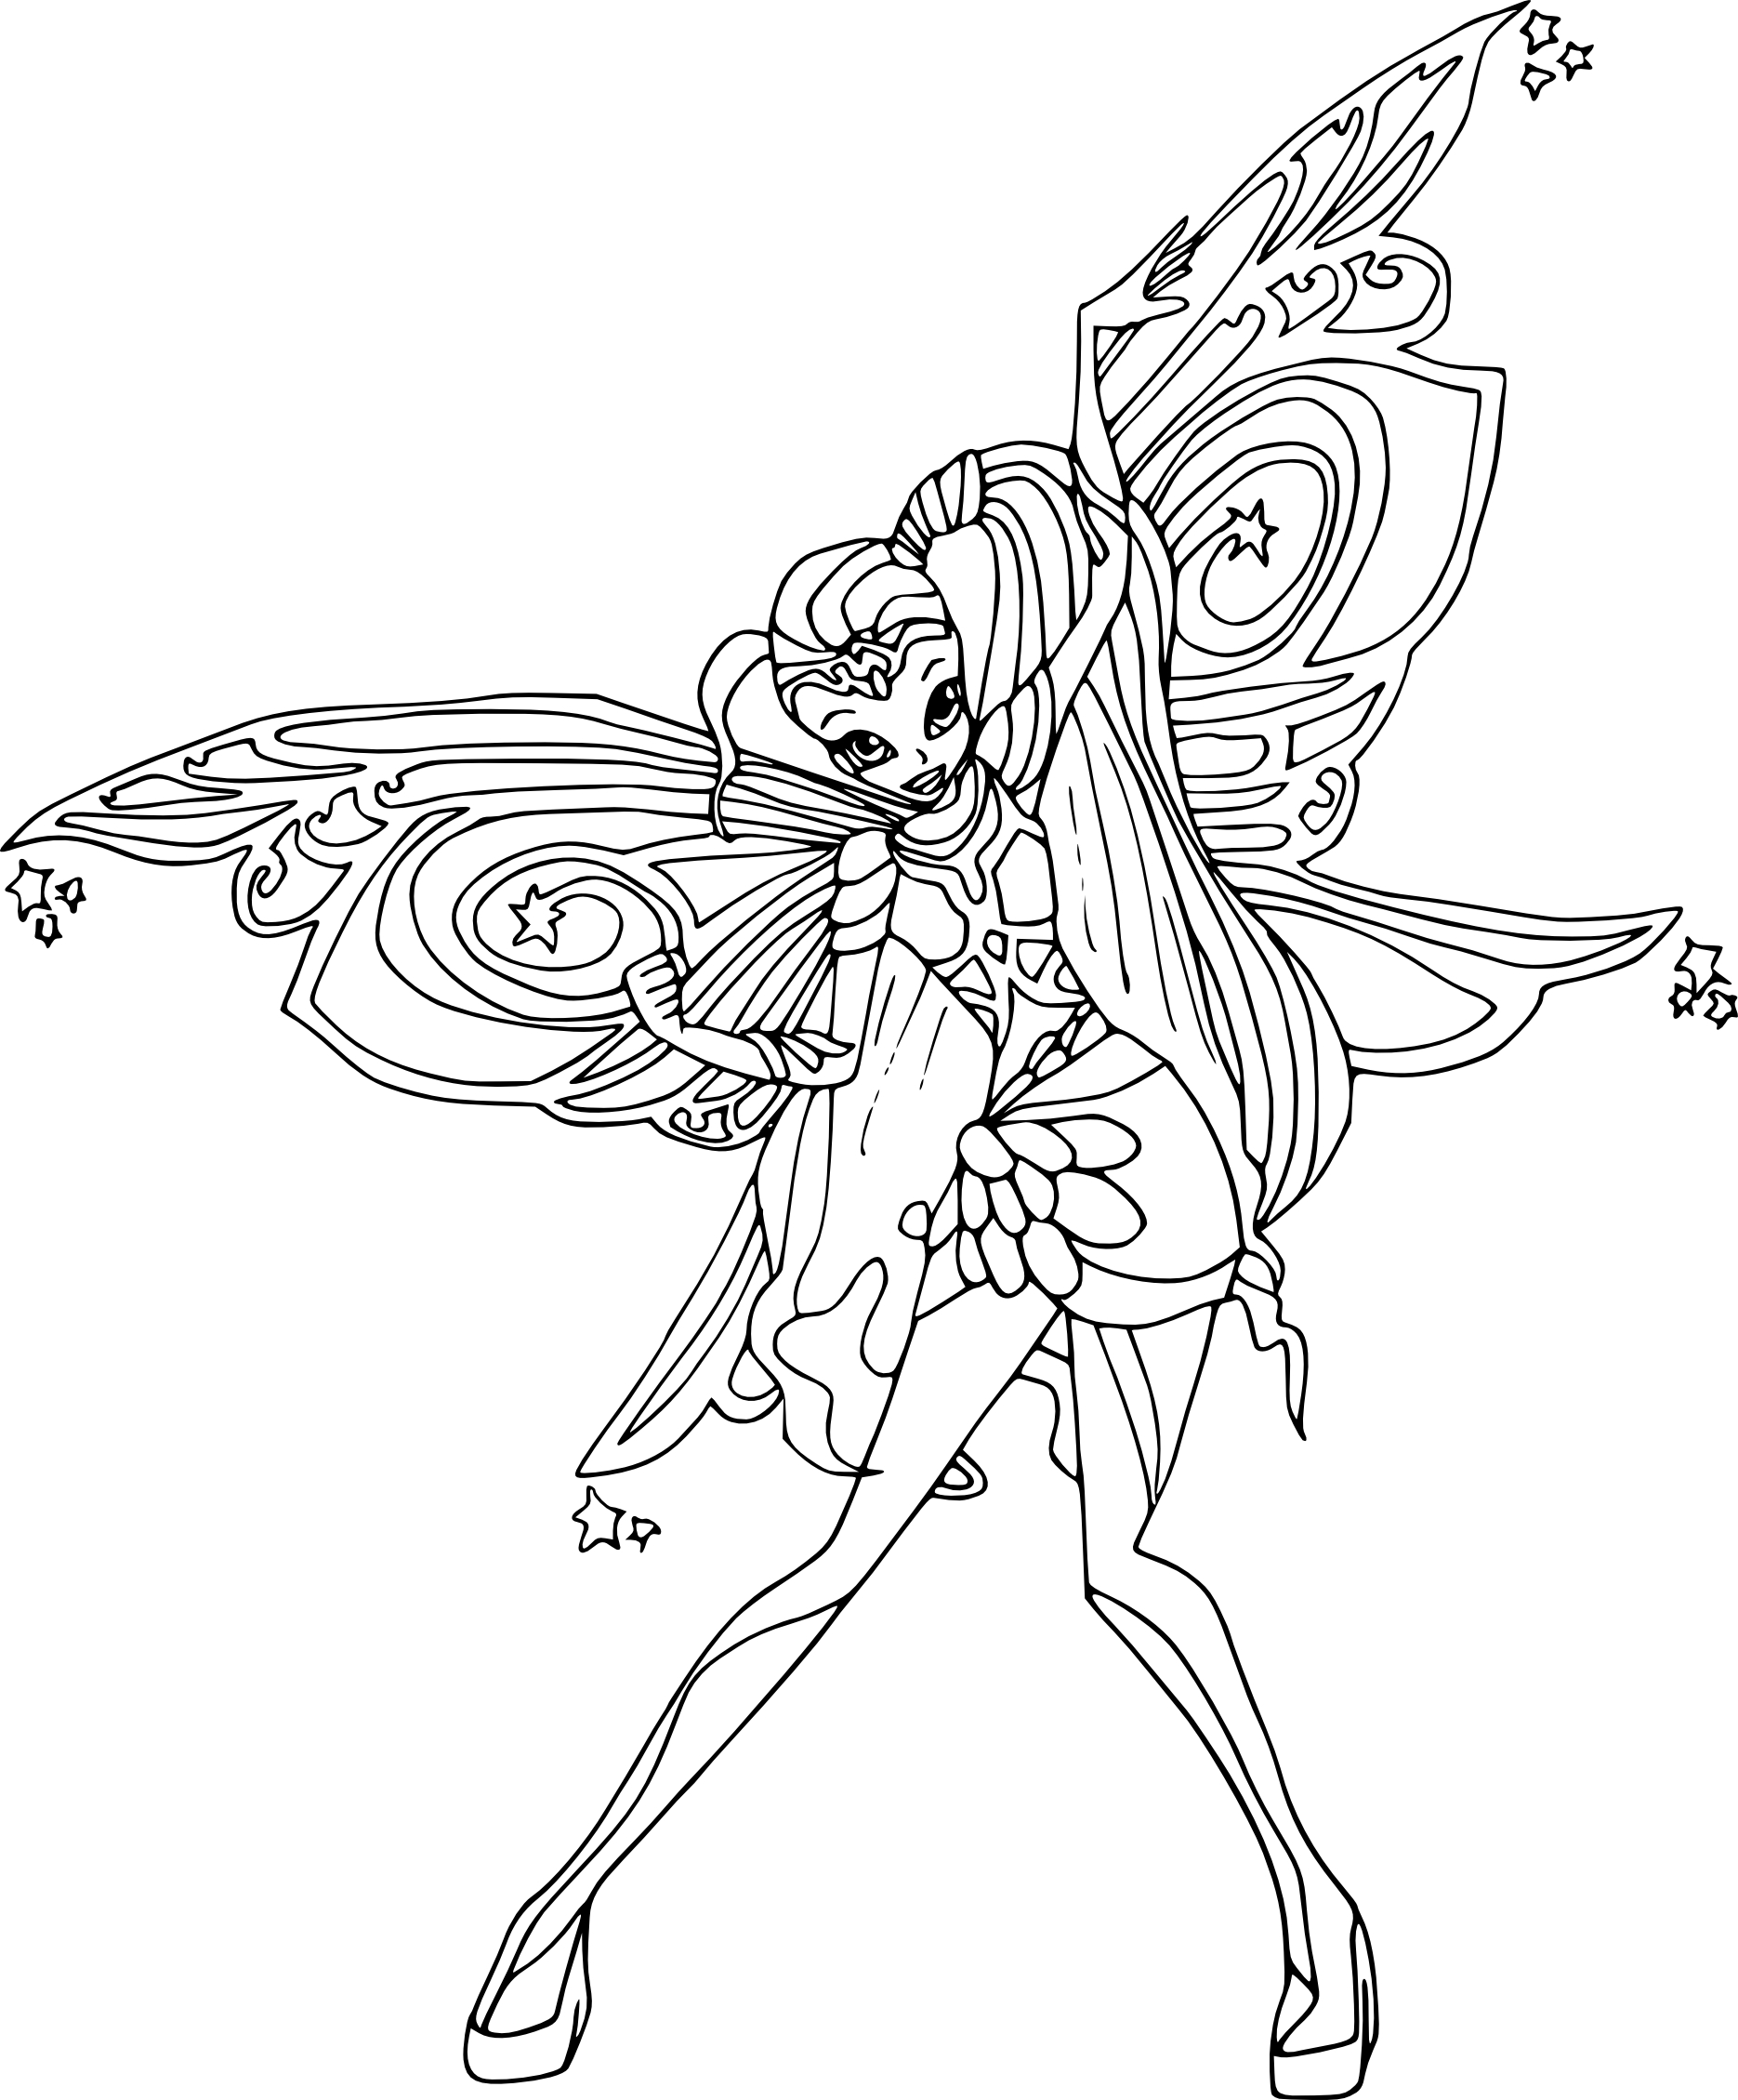 Coloriage stella bloomix winx imprimer - Coloriage winx bloom ...